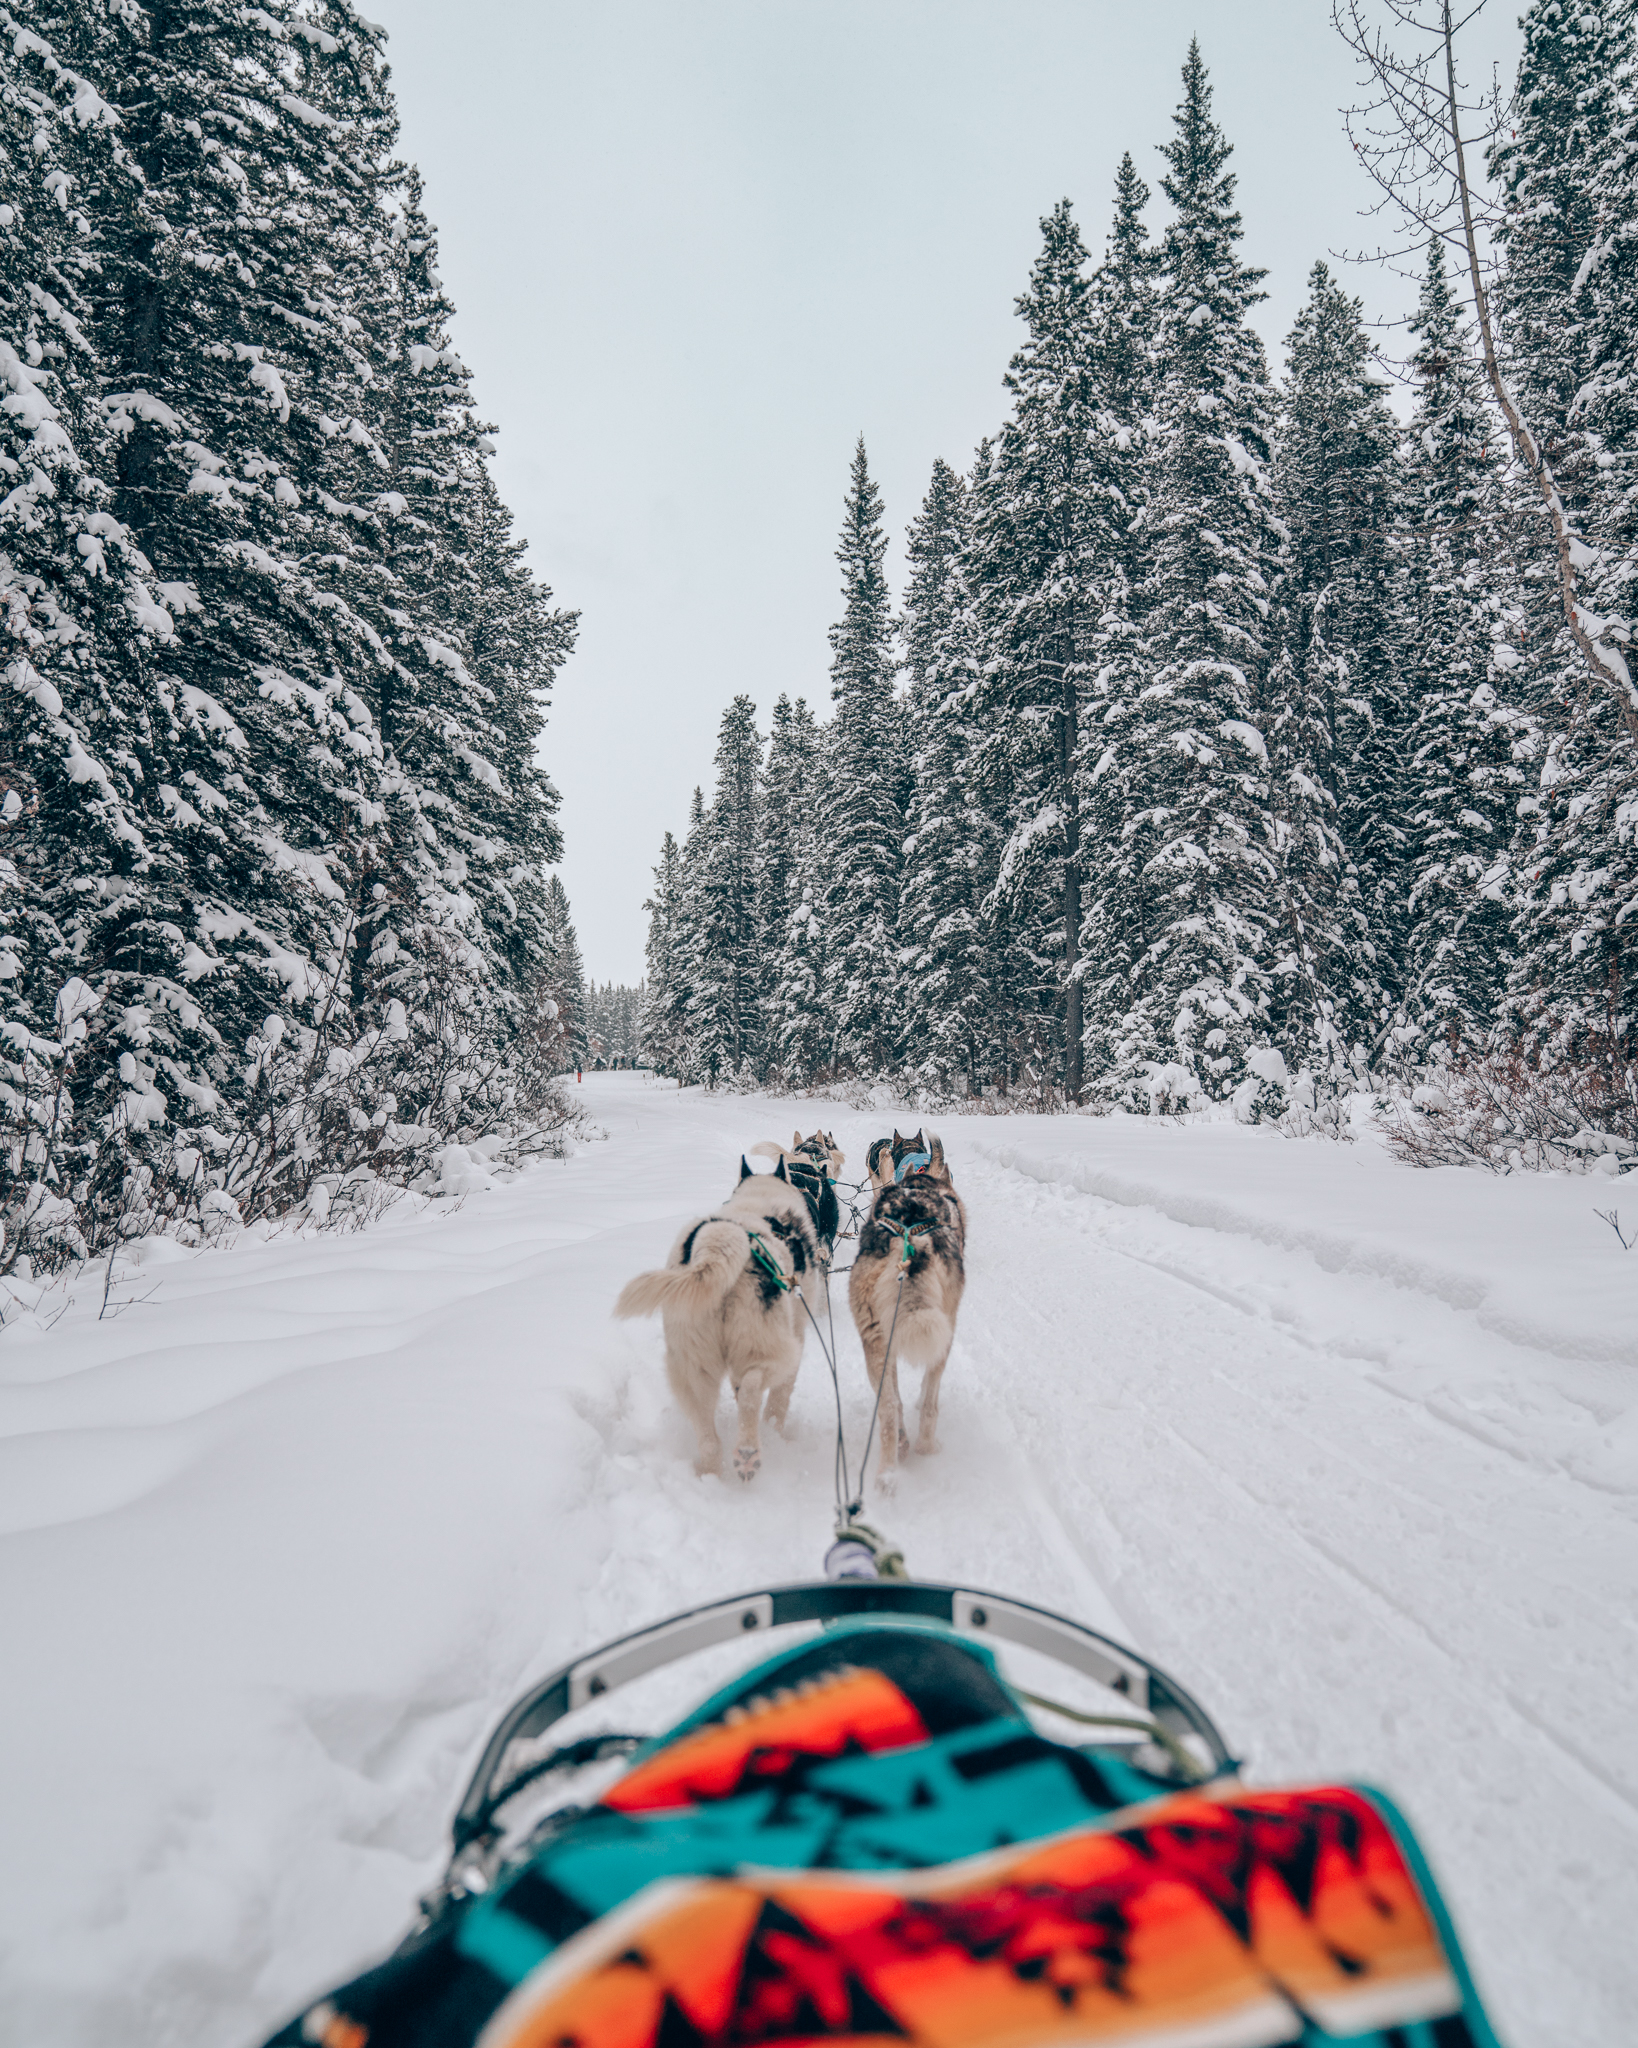 Dog Sledding in Banff National Park